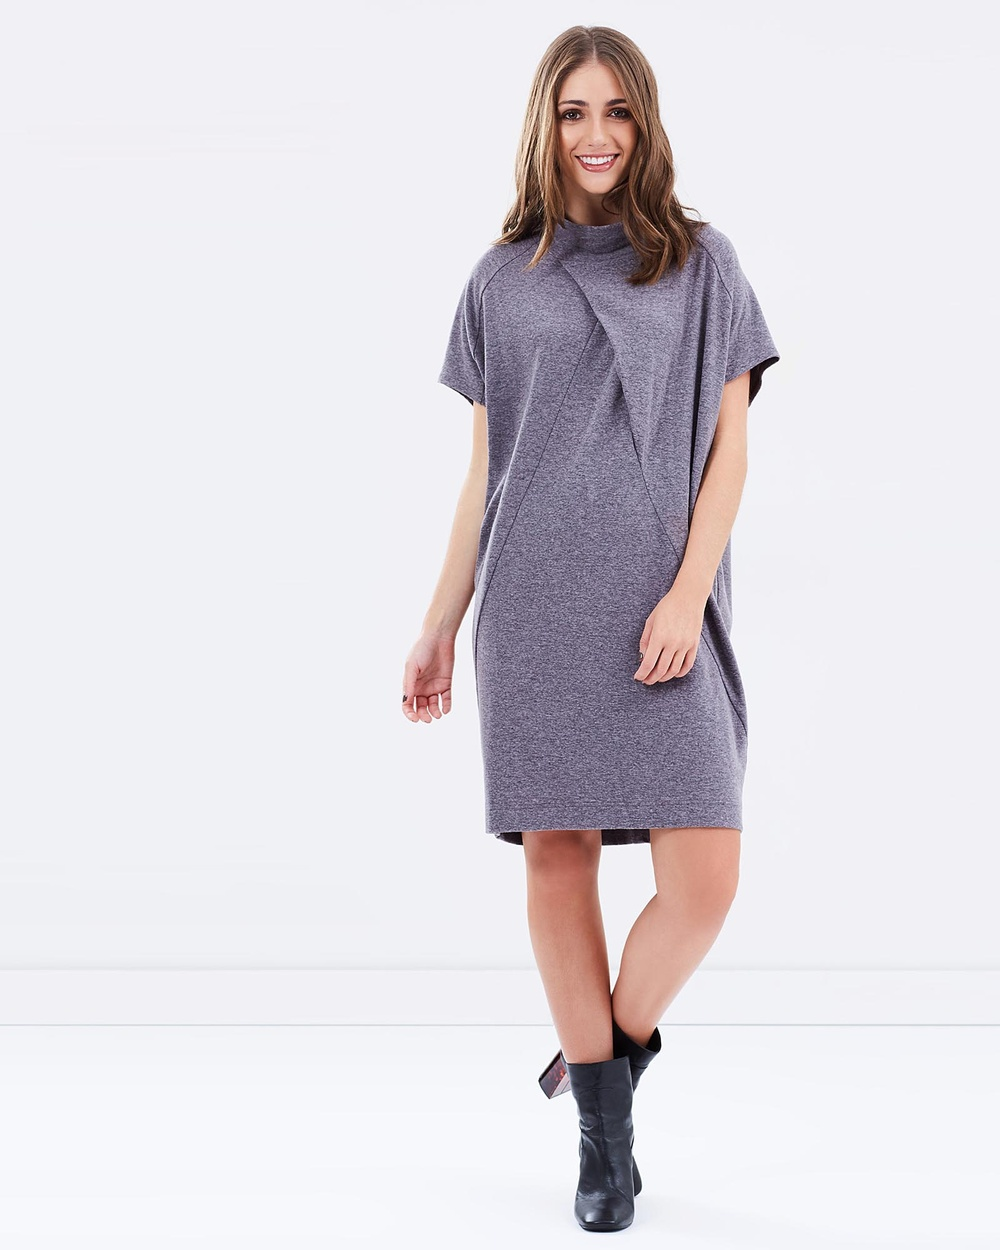 Privilege Oversized Sweater Dress Dresses Grey Oversized Sweater Dress